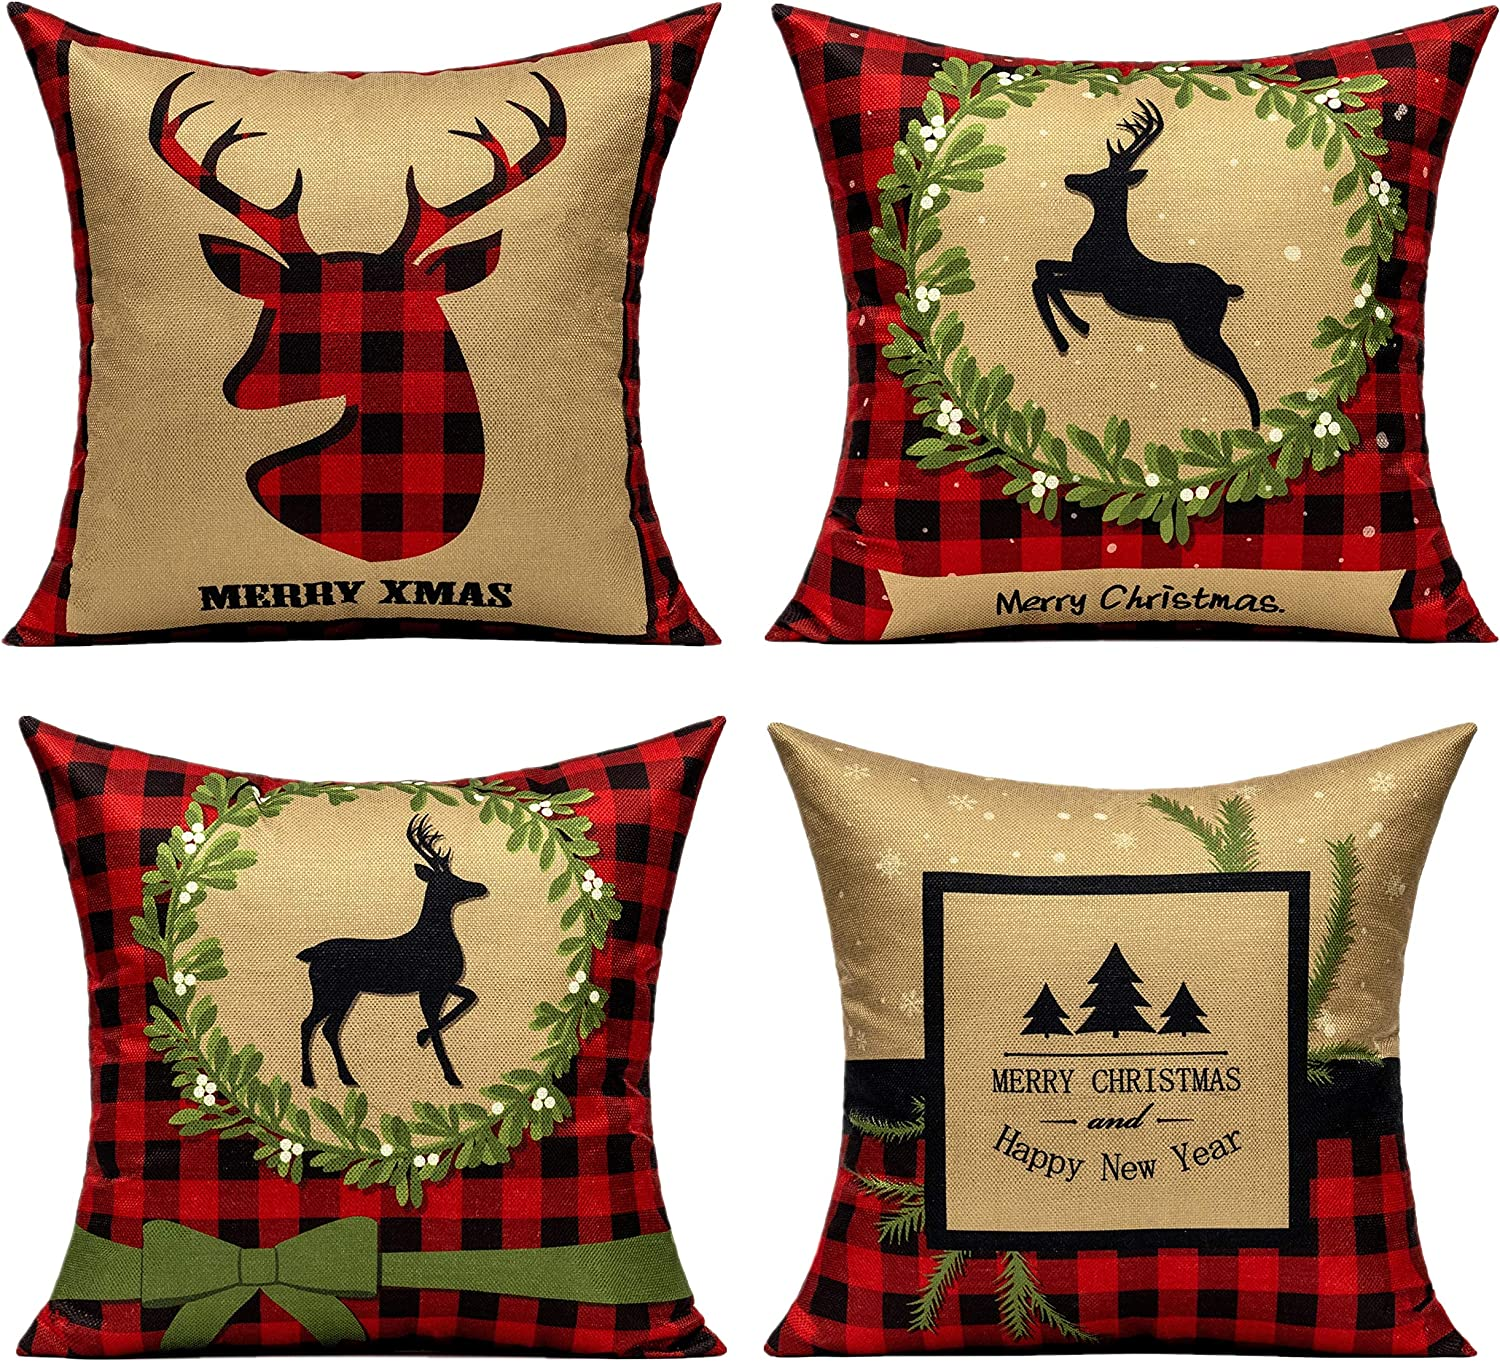 All Smiles Christmas Gold Red Throw Pillow Covers Buffalo Check Plaid Cushion Cases Happy New Year Décor 18x18 Deer PiIlowcase Tree Prints Xmas Decorations for Sofa Couch Bed